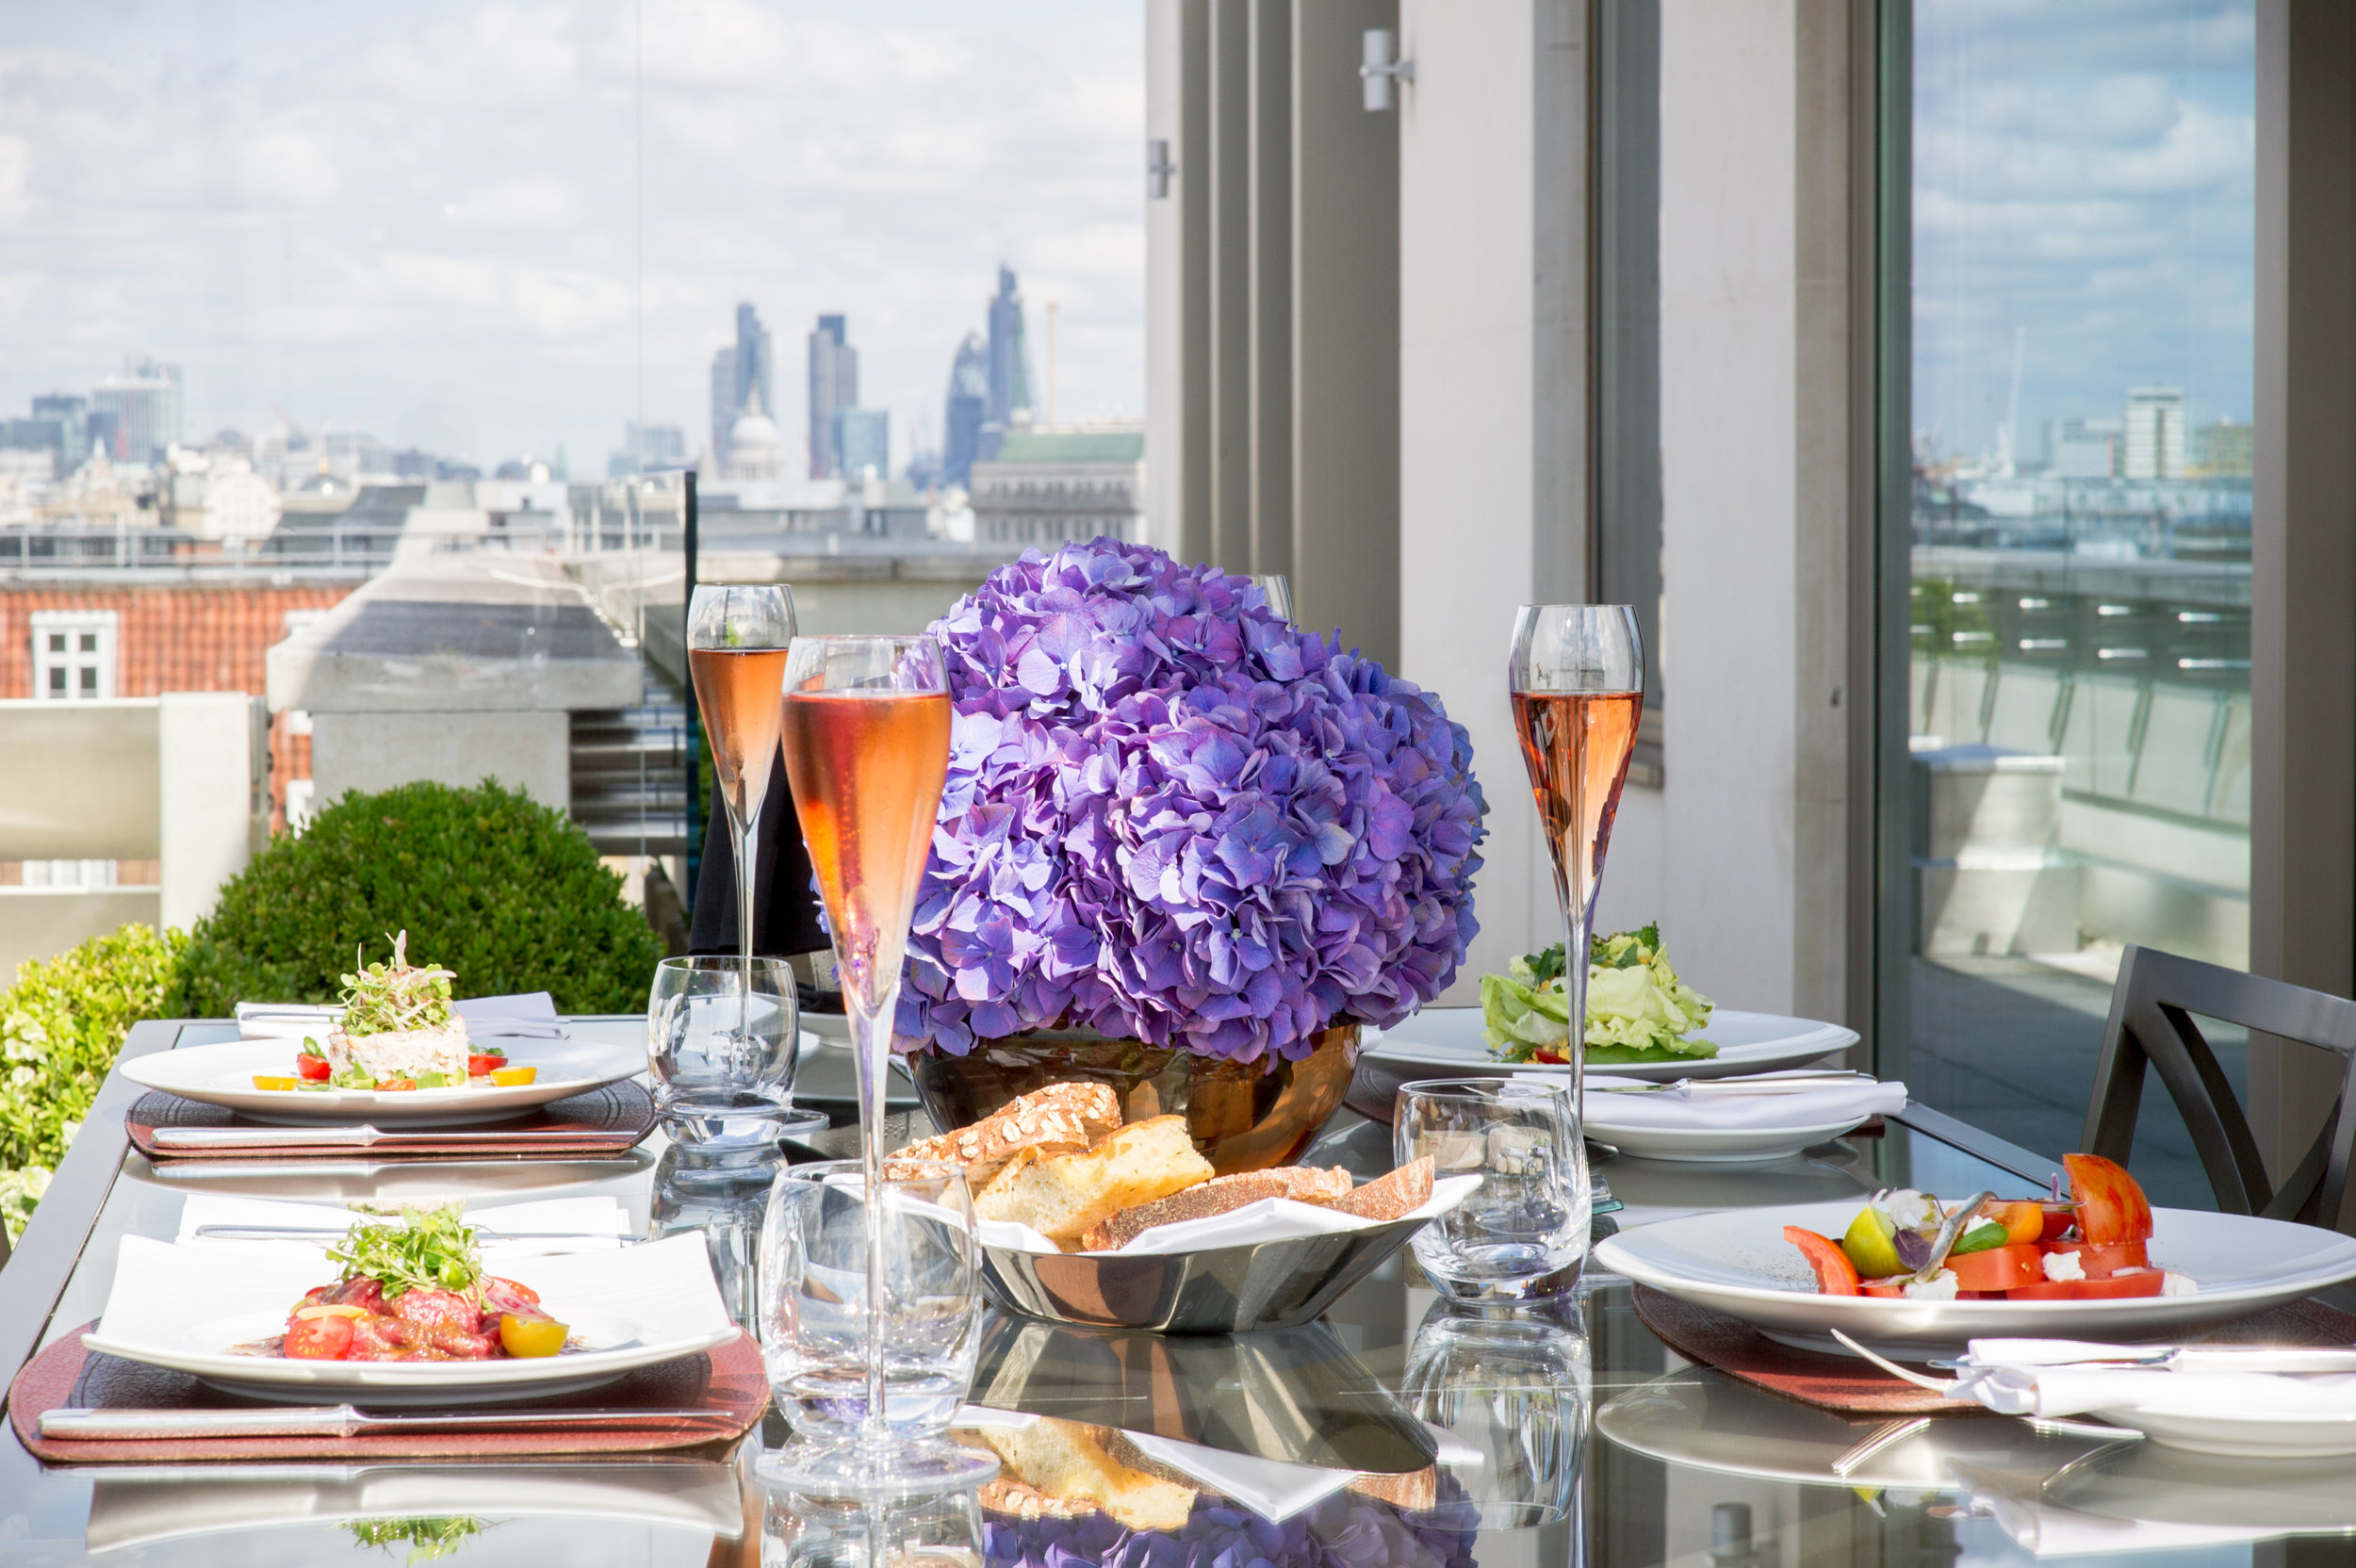 45 Park Lane - Penthouse Suite Terrace, set for private dinning (high res crop).jpg